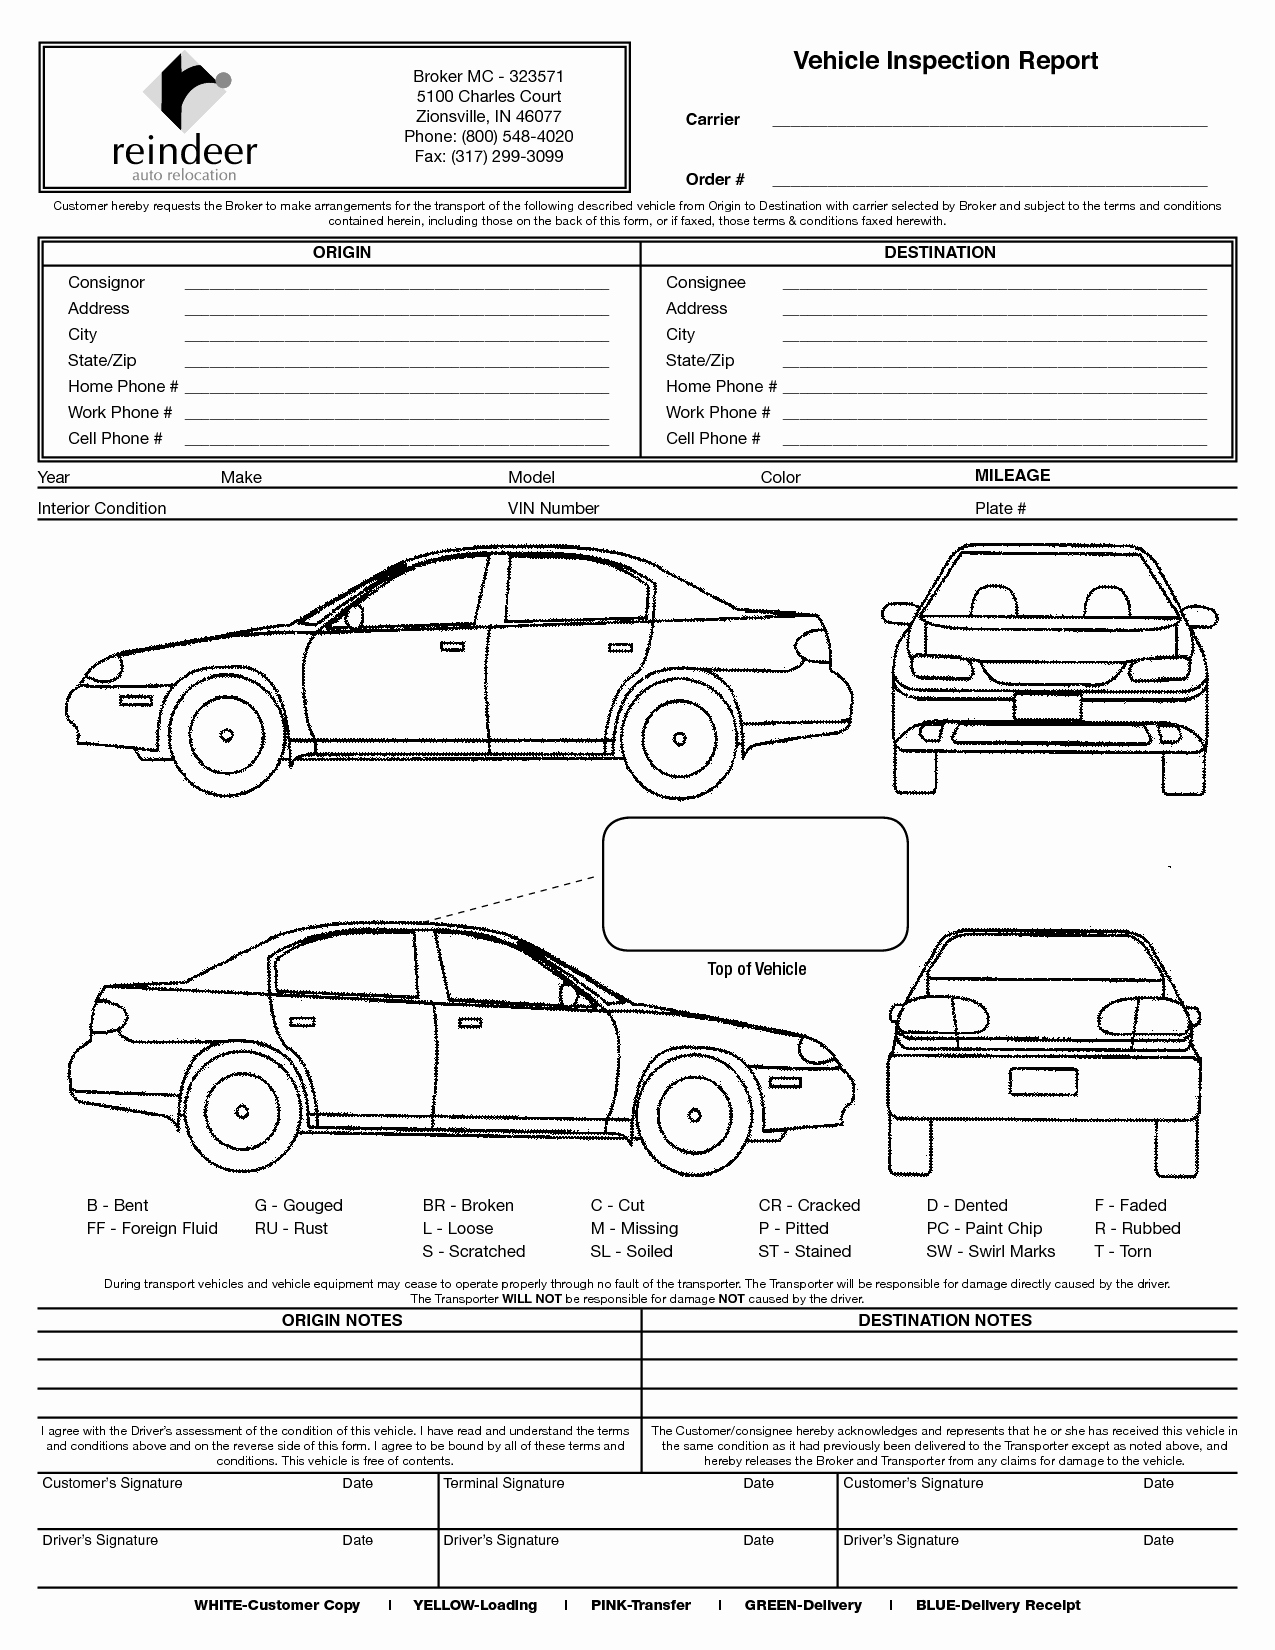 Vehicle Condition Report form Fresh Vehicle Condition Report Template